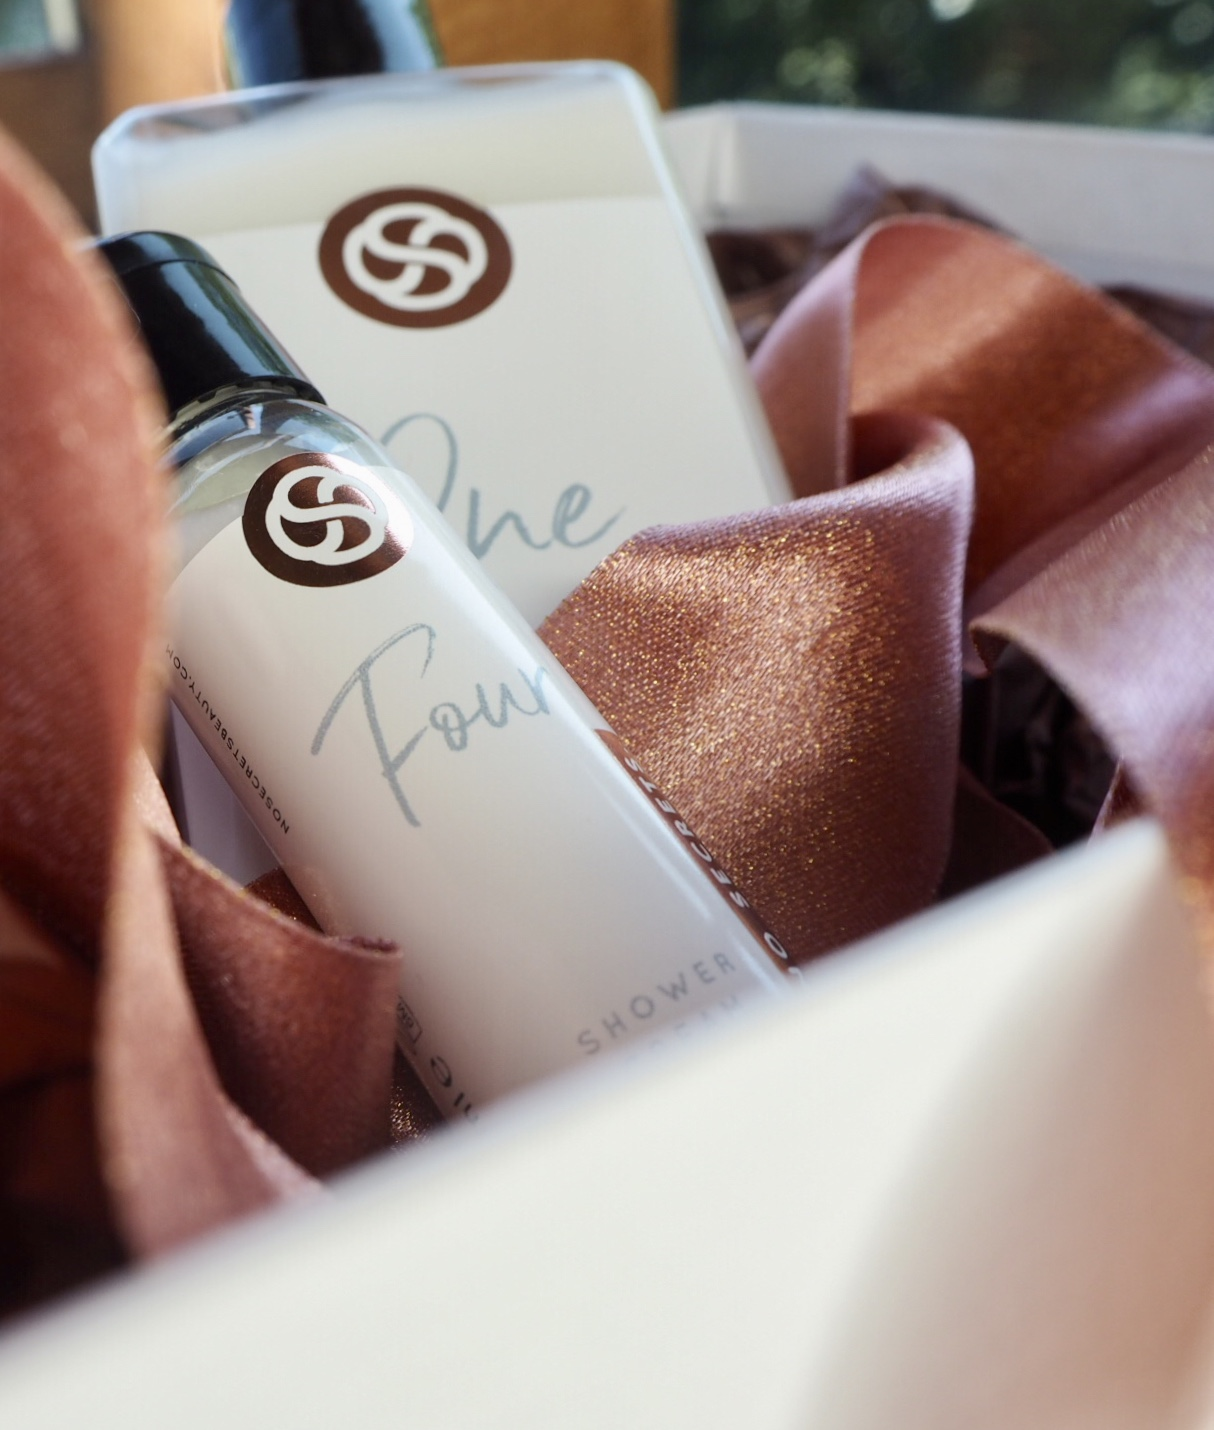 No secrets Shower creams with rose gold packaging